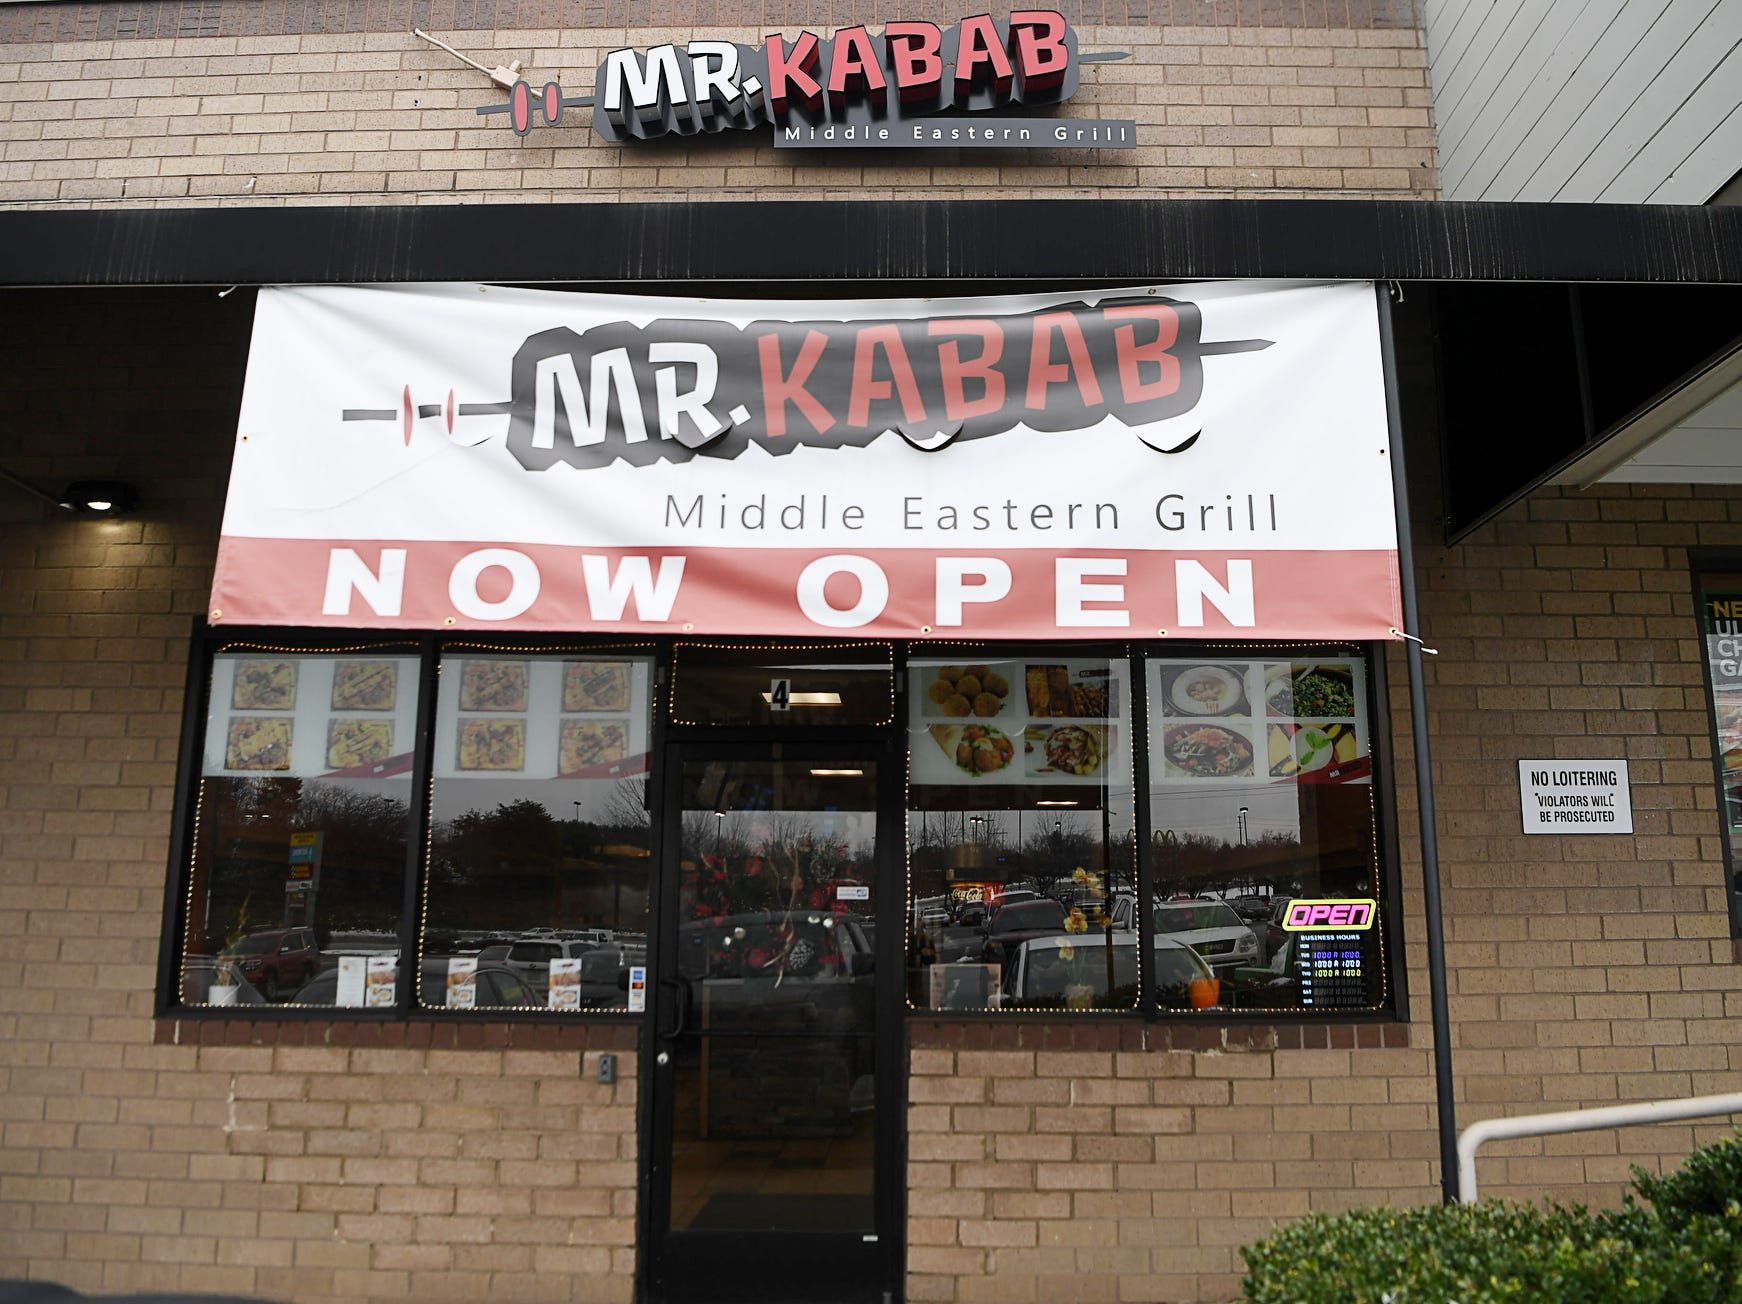 Mr. Kabab, a new Middle Eastern restaurant in a strip mall in East Asheville Dec. 11, 2018.